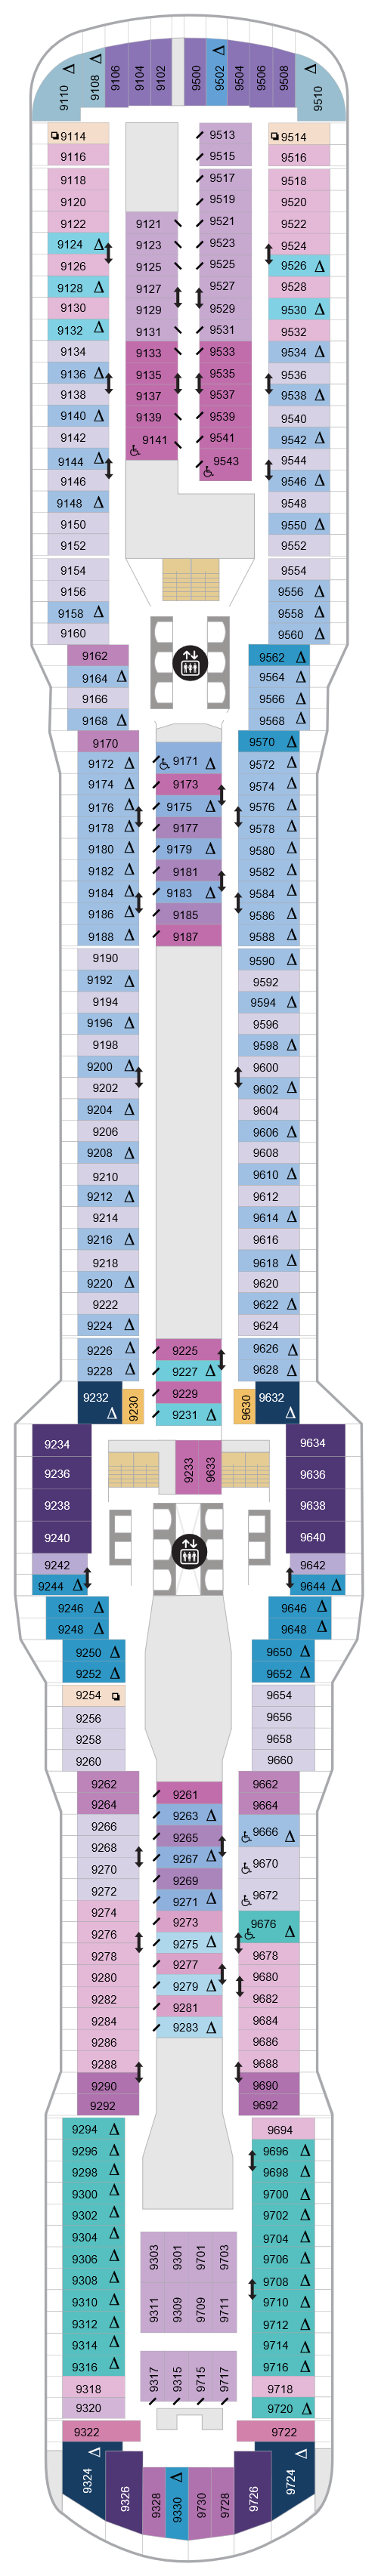 Spectrum Of The Seas Deck 9 layout